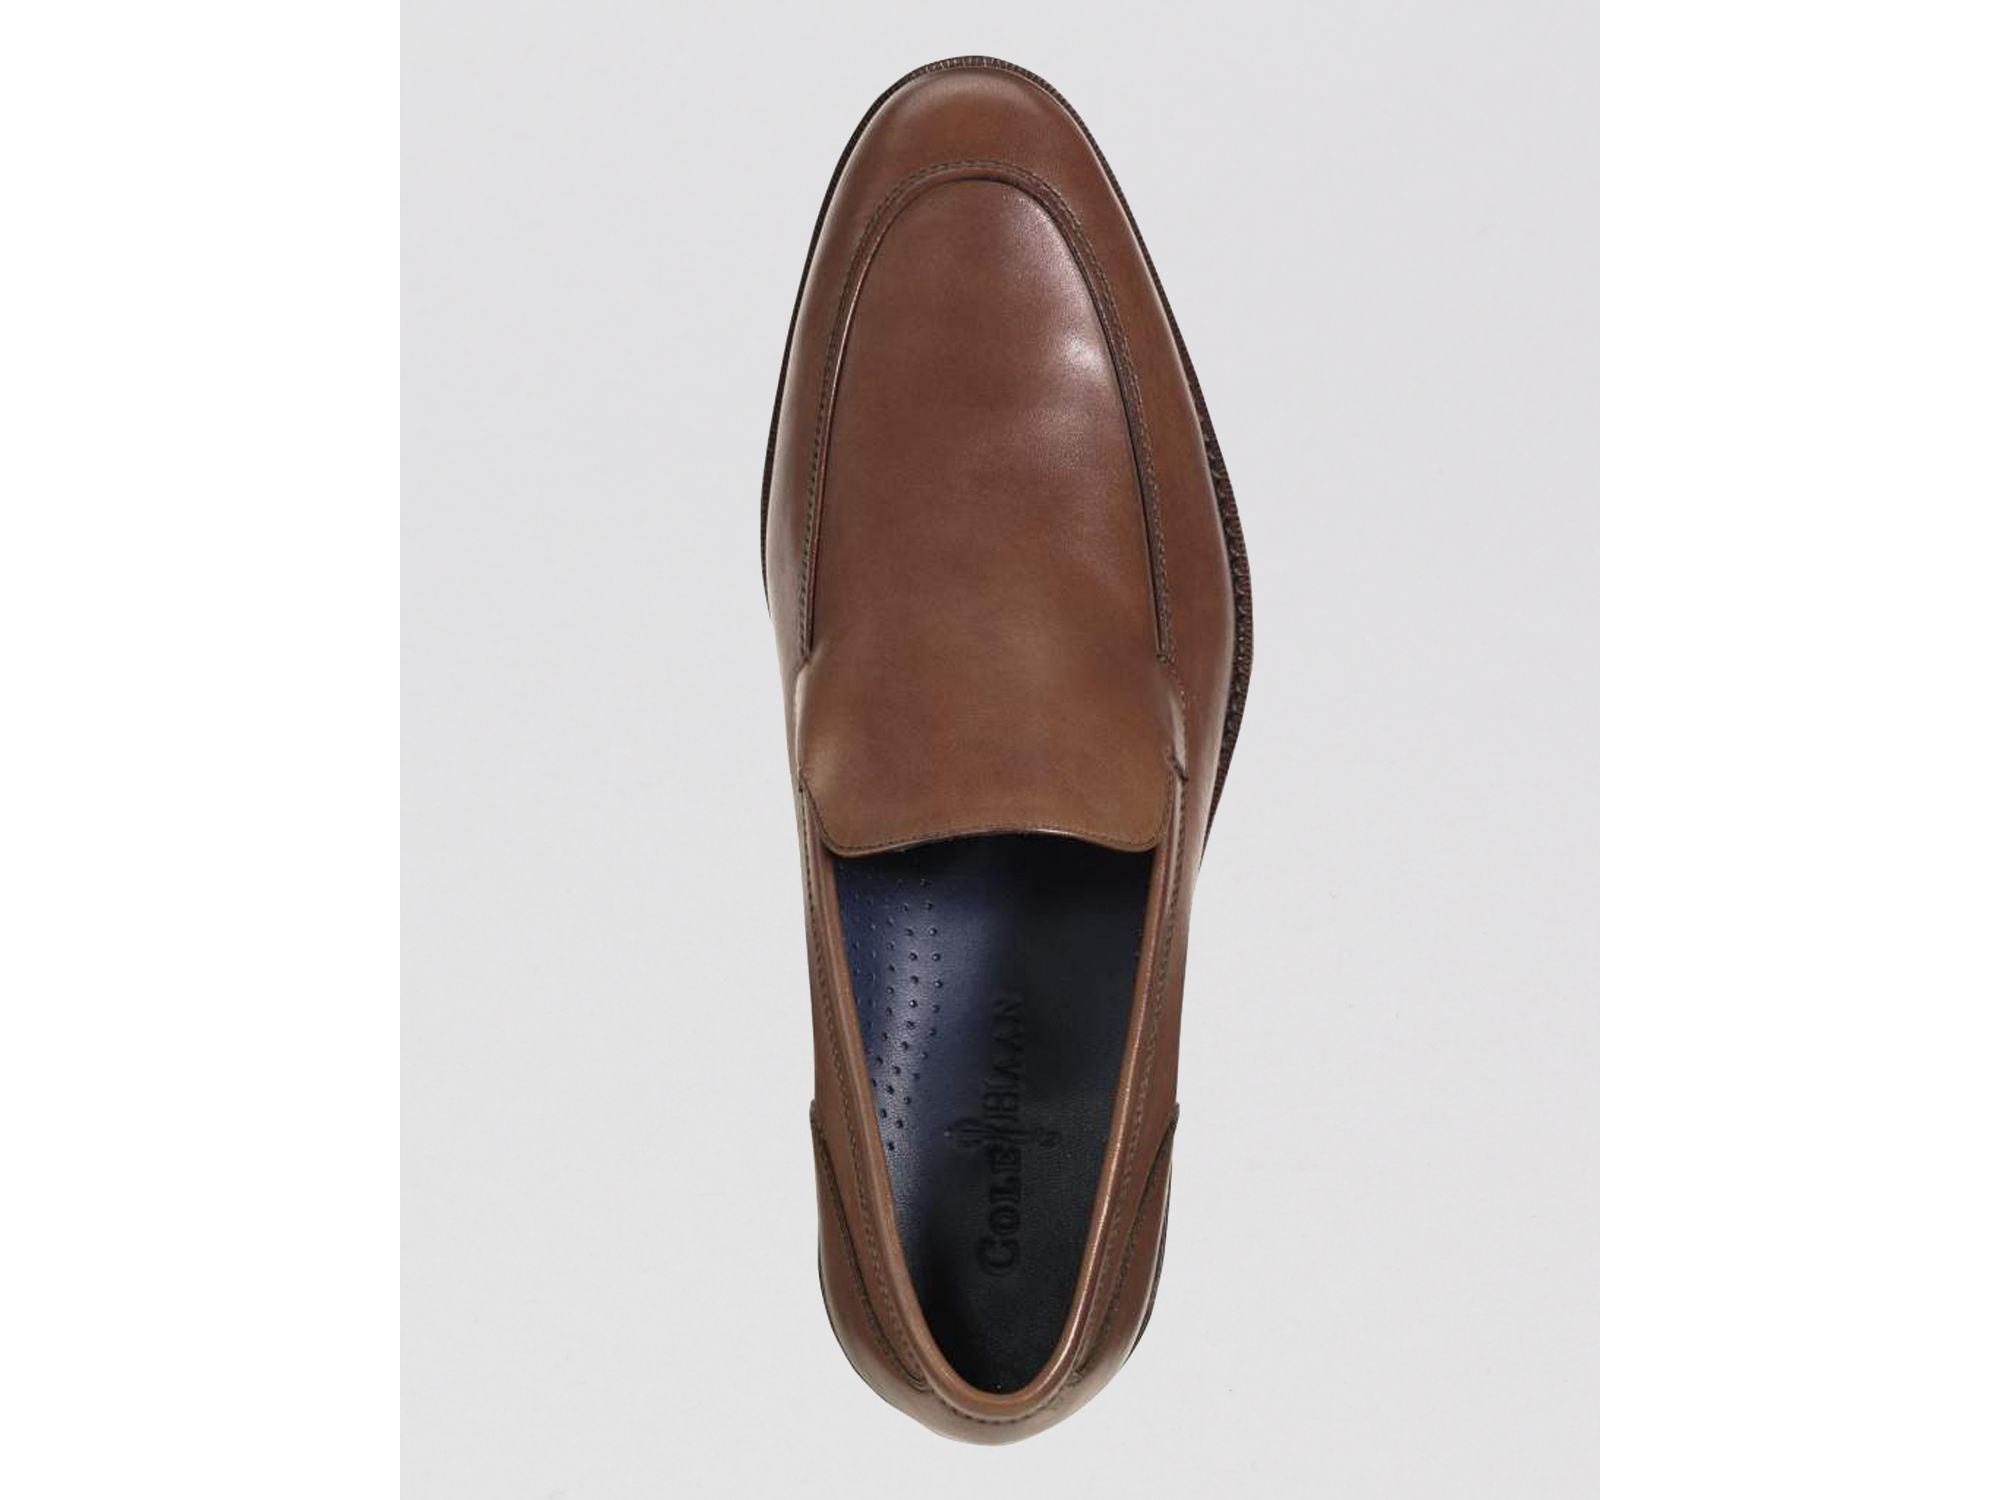 9a3c07ad0 Gallery. Previously sold at: Bloomingdale's · Men's Cole Haan Madison Shoes